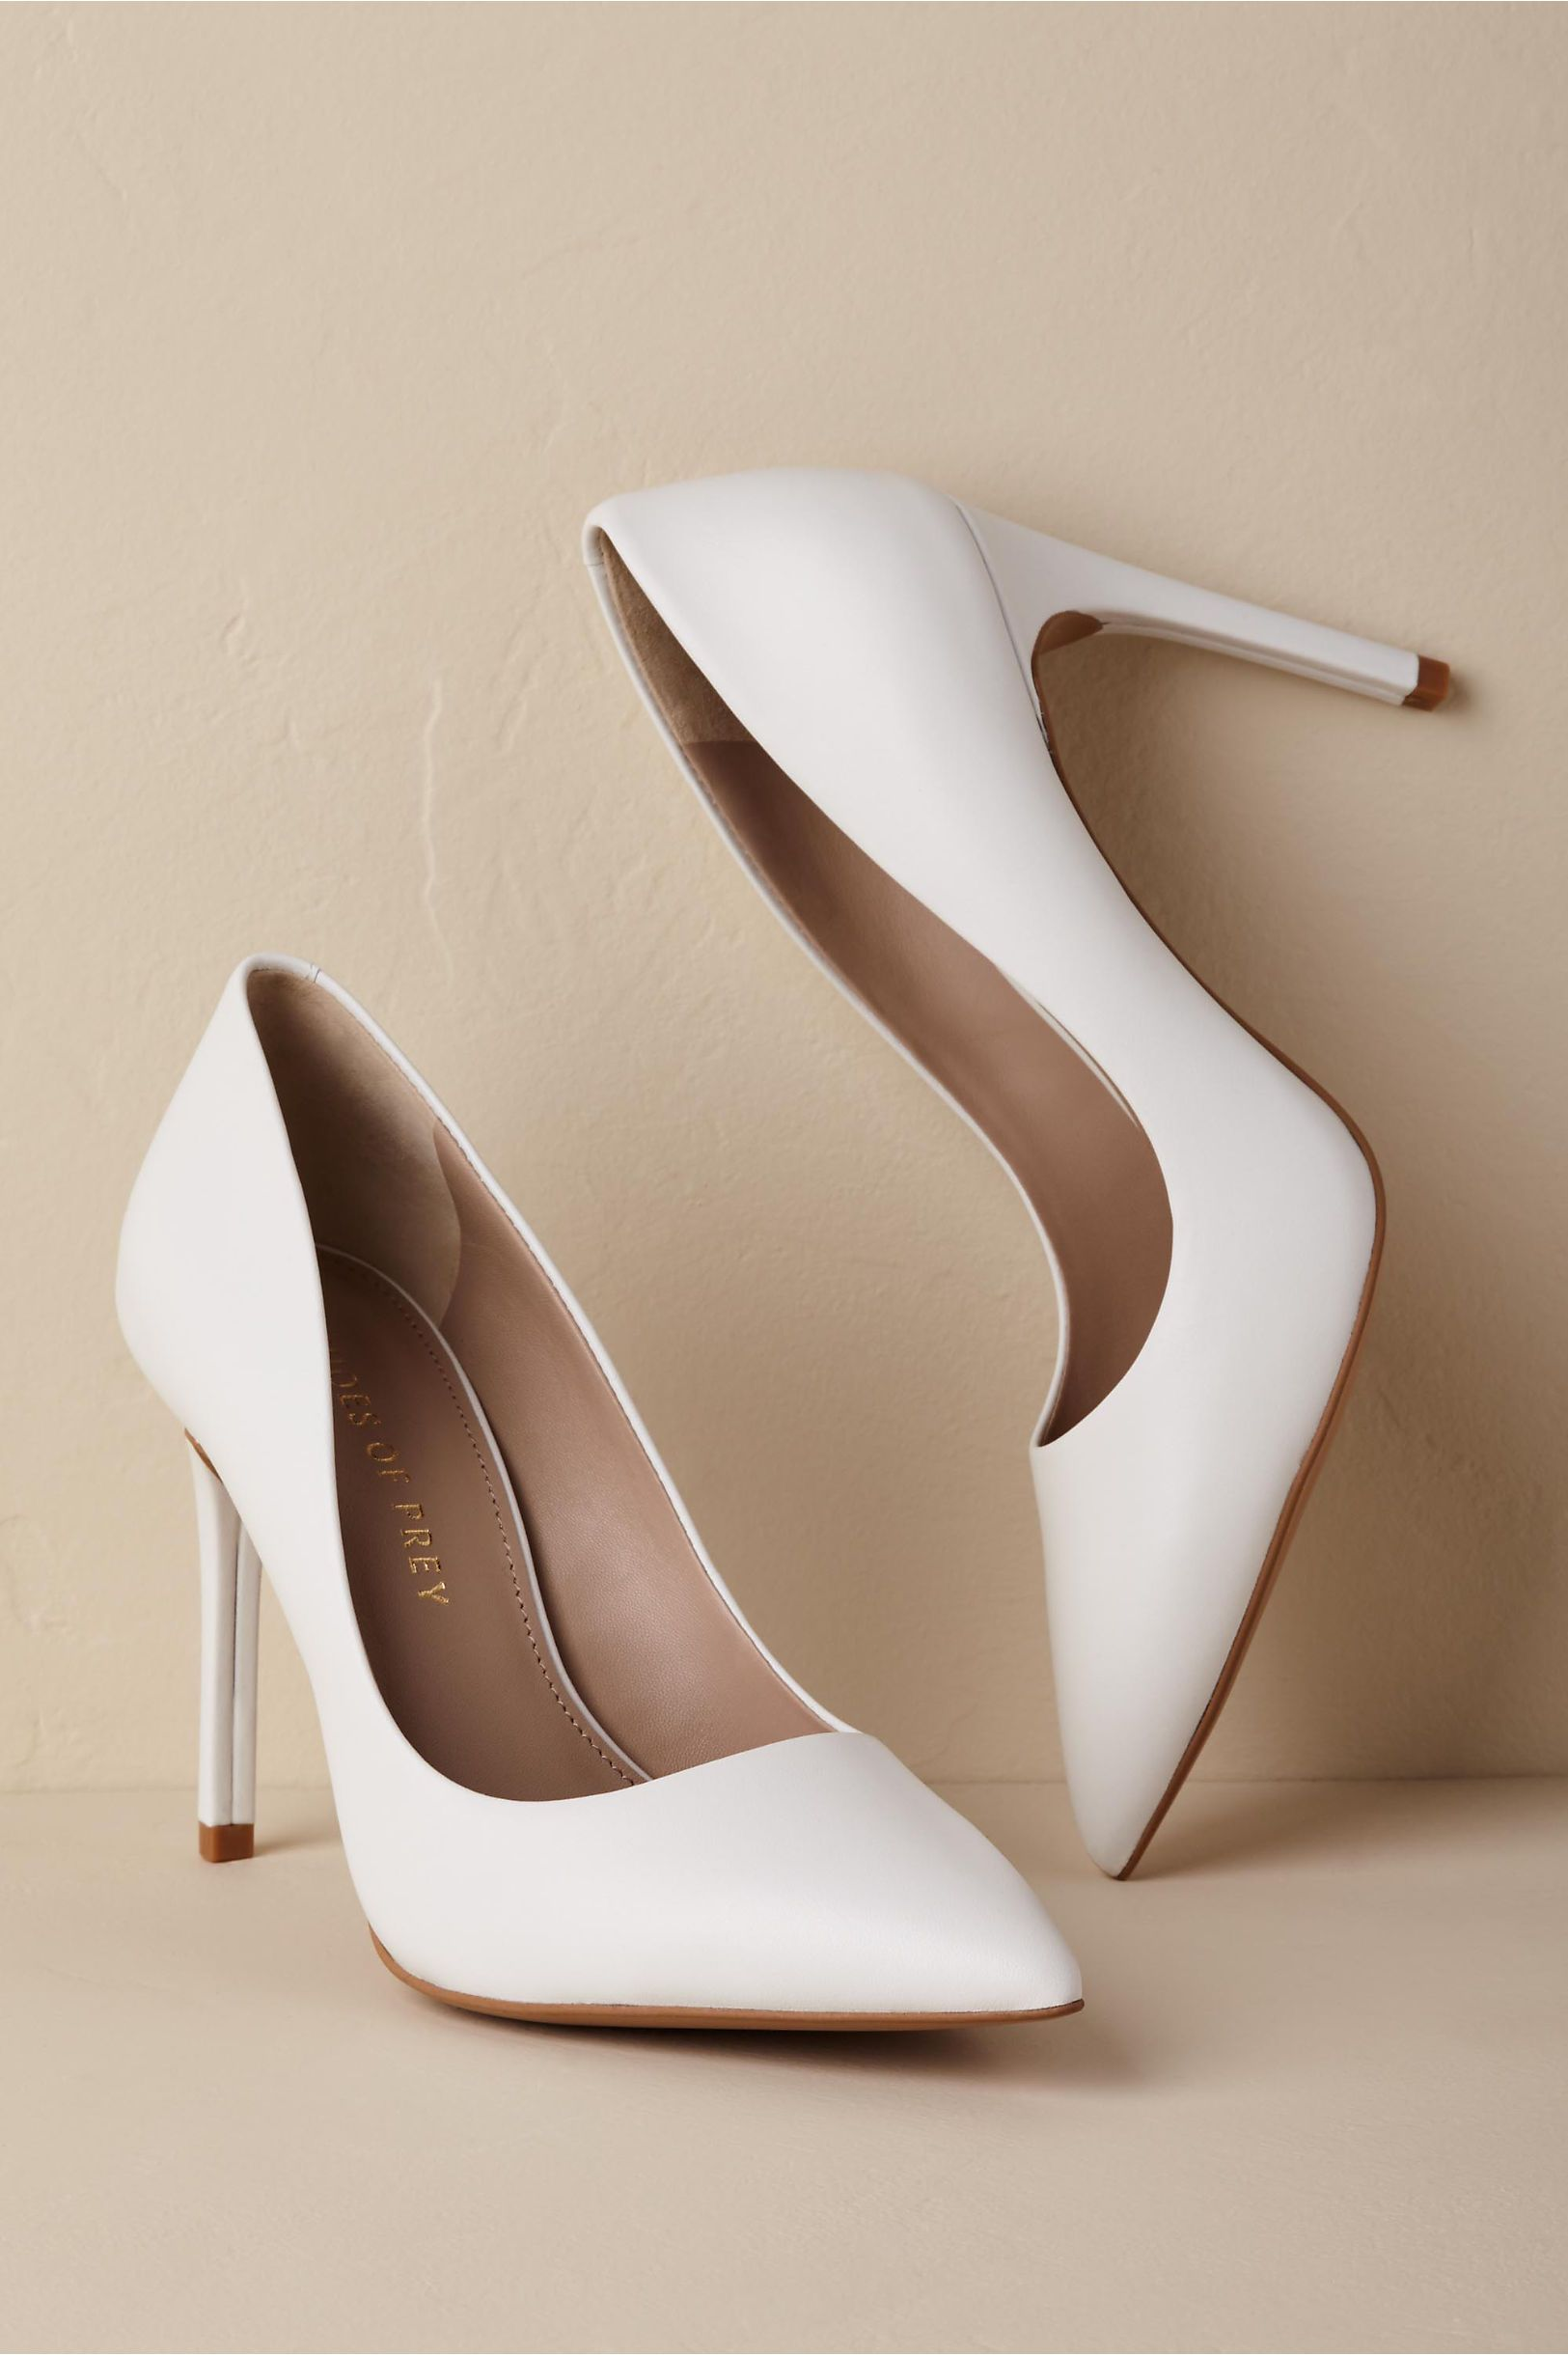 66c75e09de42 BHLDN s Shoes of Prey Como Heels in Ivory